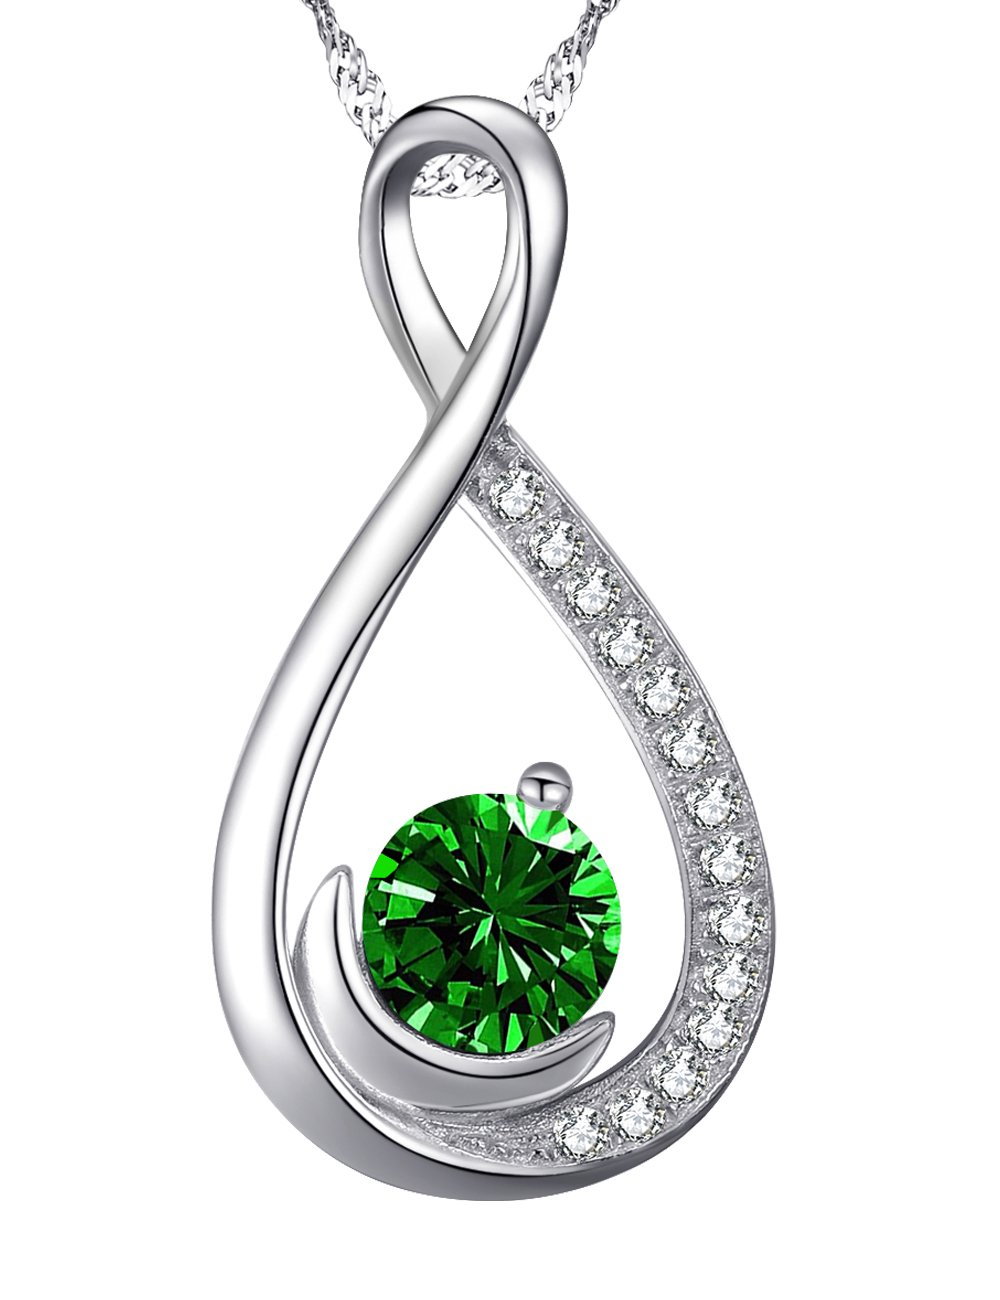 Love Infinity Half Moon Jewelry Gifts for Women Green Emerald Necklace Birthday Anniversary Gifts for Wife for Lady for Her Daughter Grandma Sterling Silver Swarovski, 18''+2'' Chain